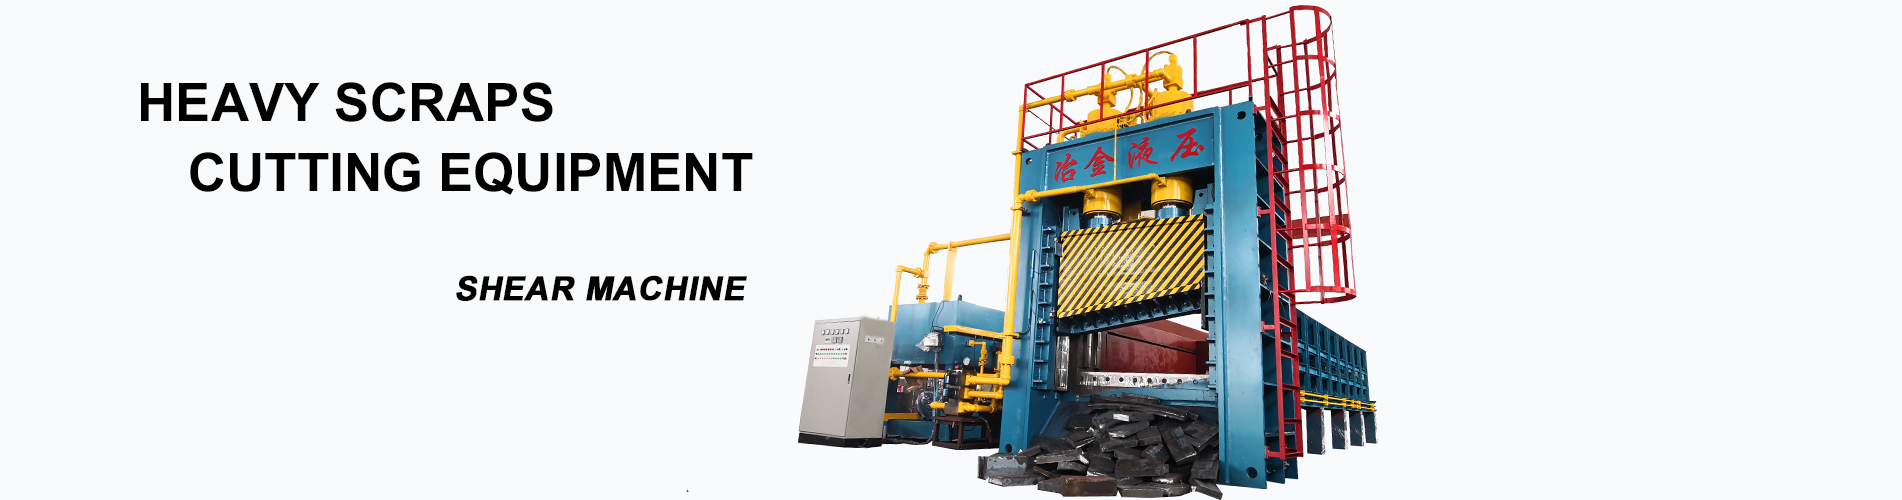 Heavy scrap shear machine